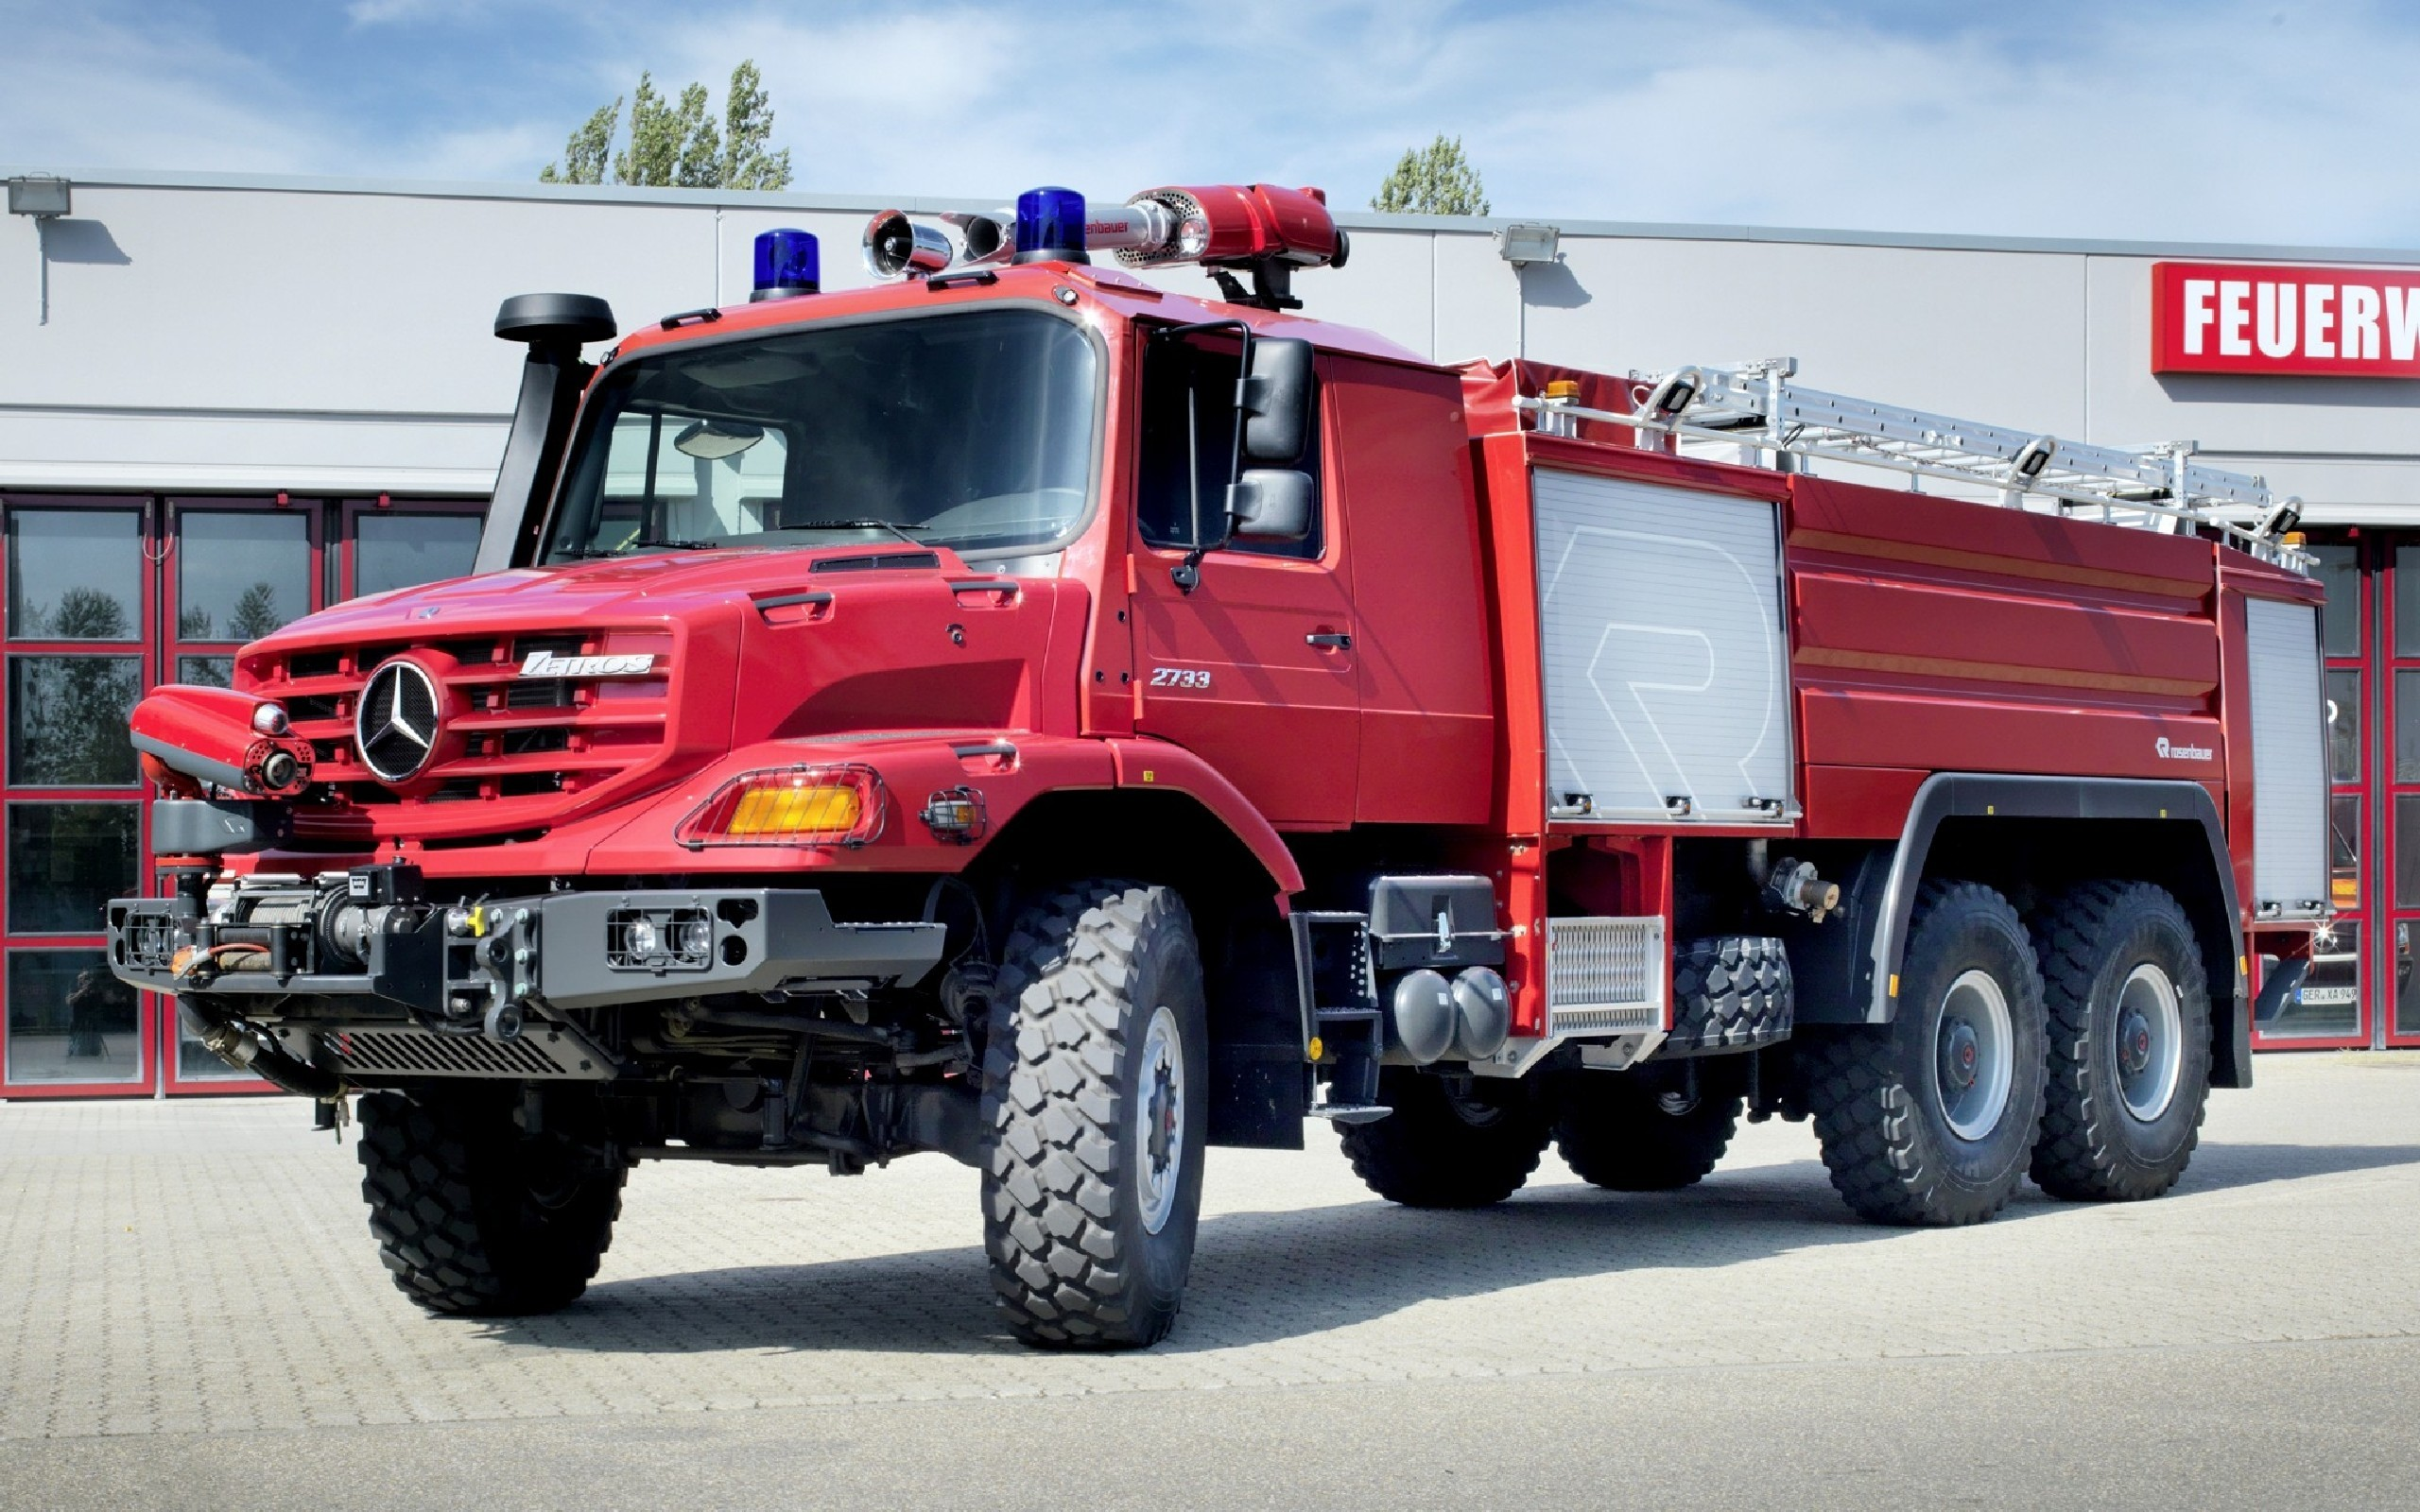 2560x1600 download-free-fire-truck-wallpapers-2560×1600-for-samsung-WTG20012349